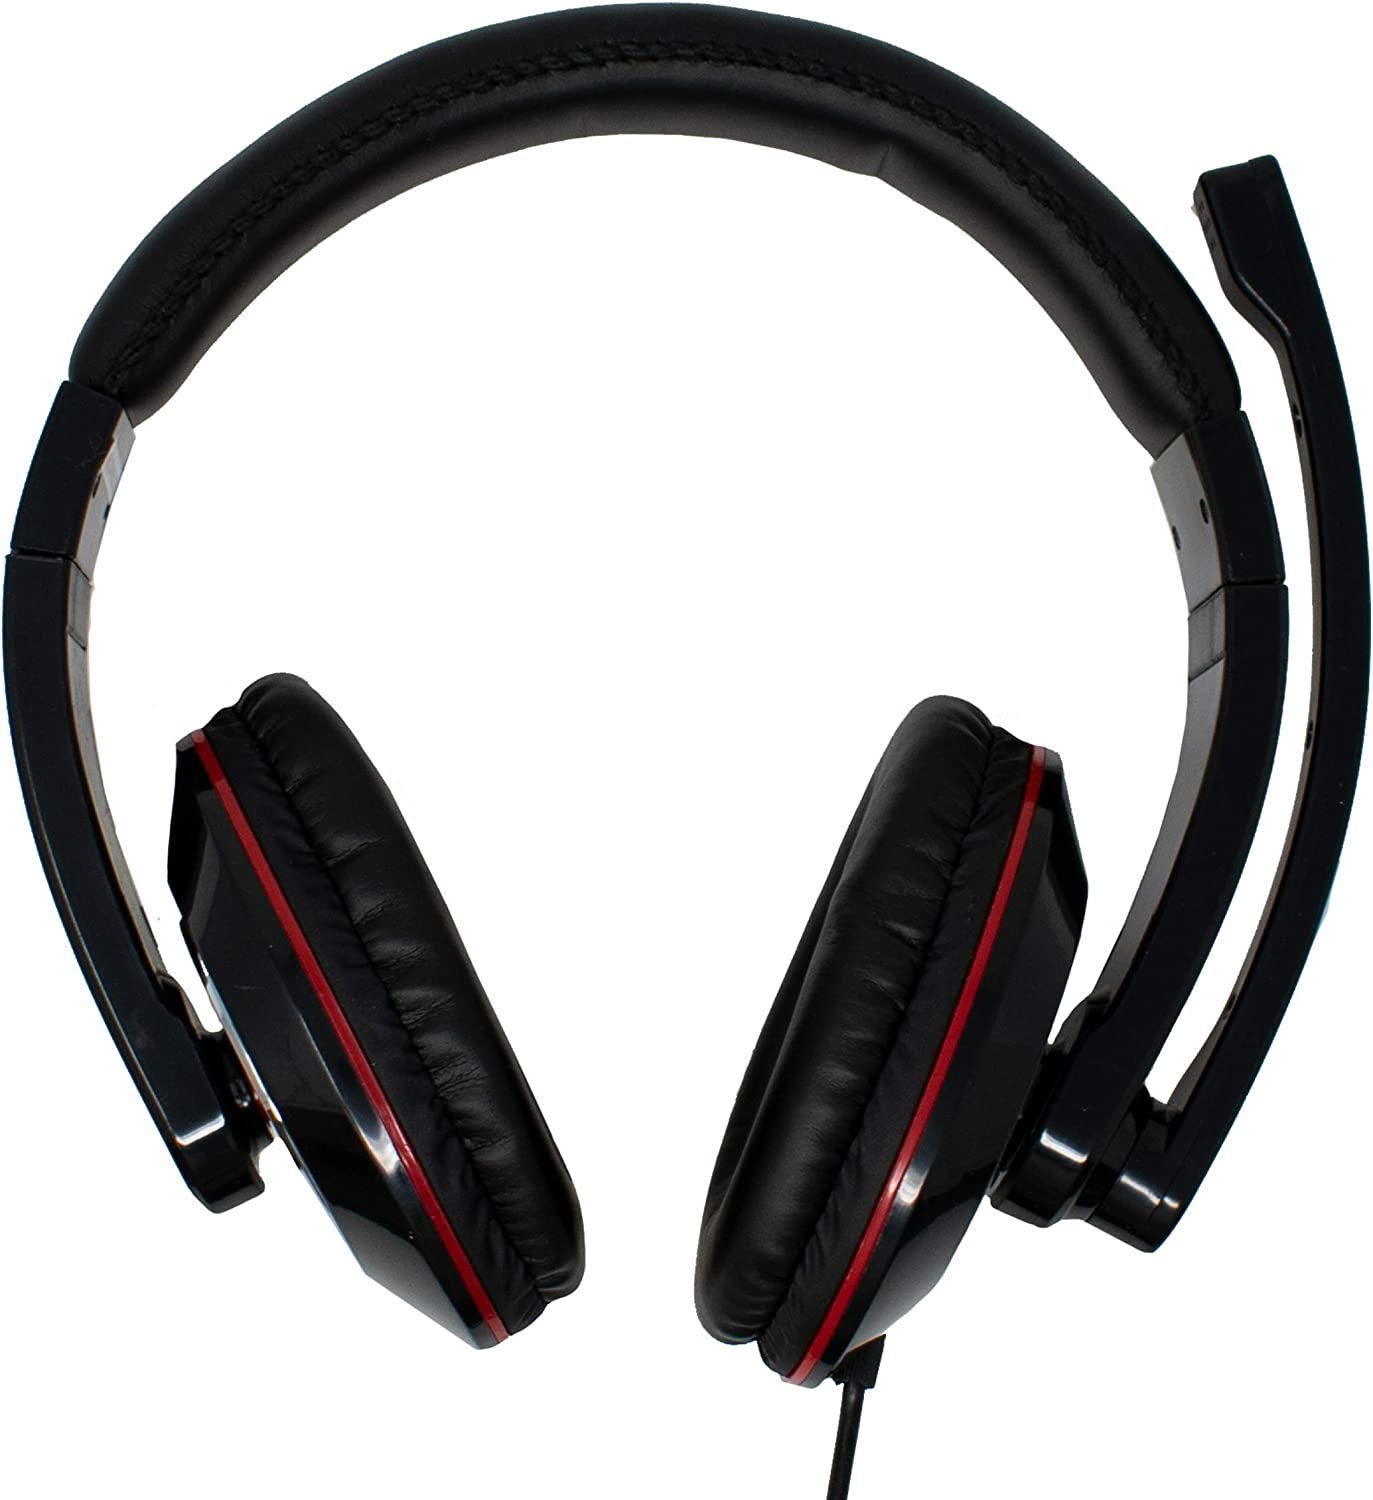 3.5mm Mic Jack Headphone Stereo Headset